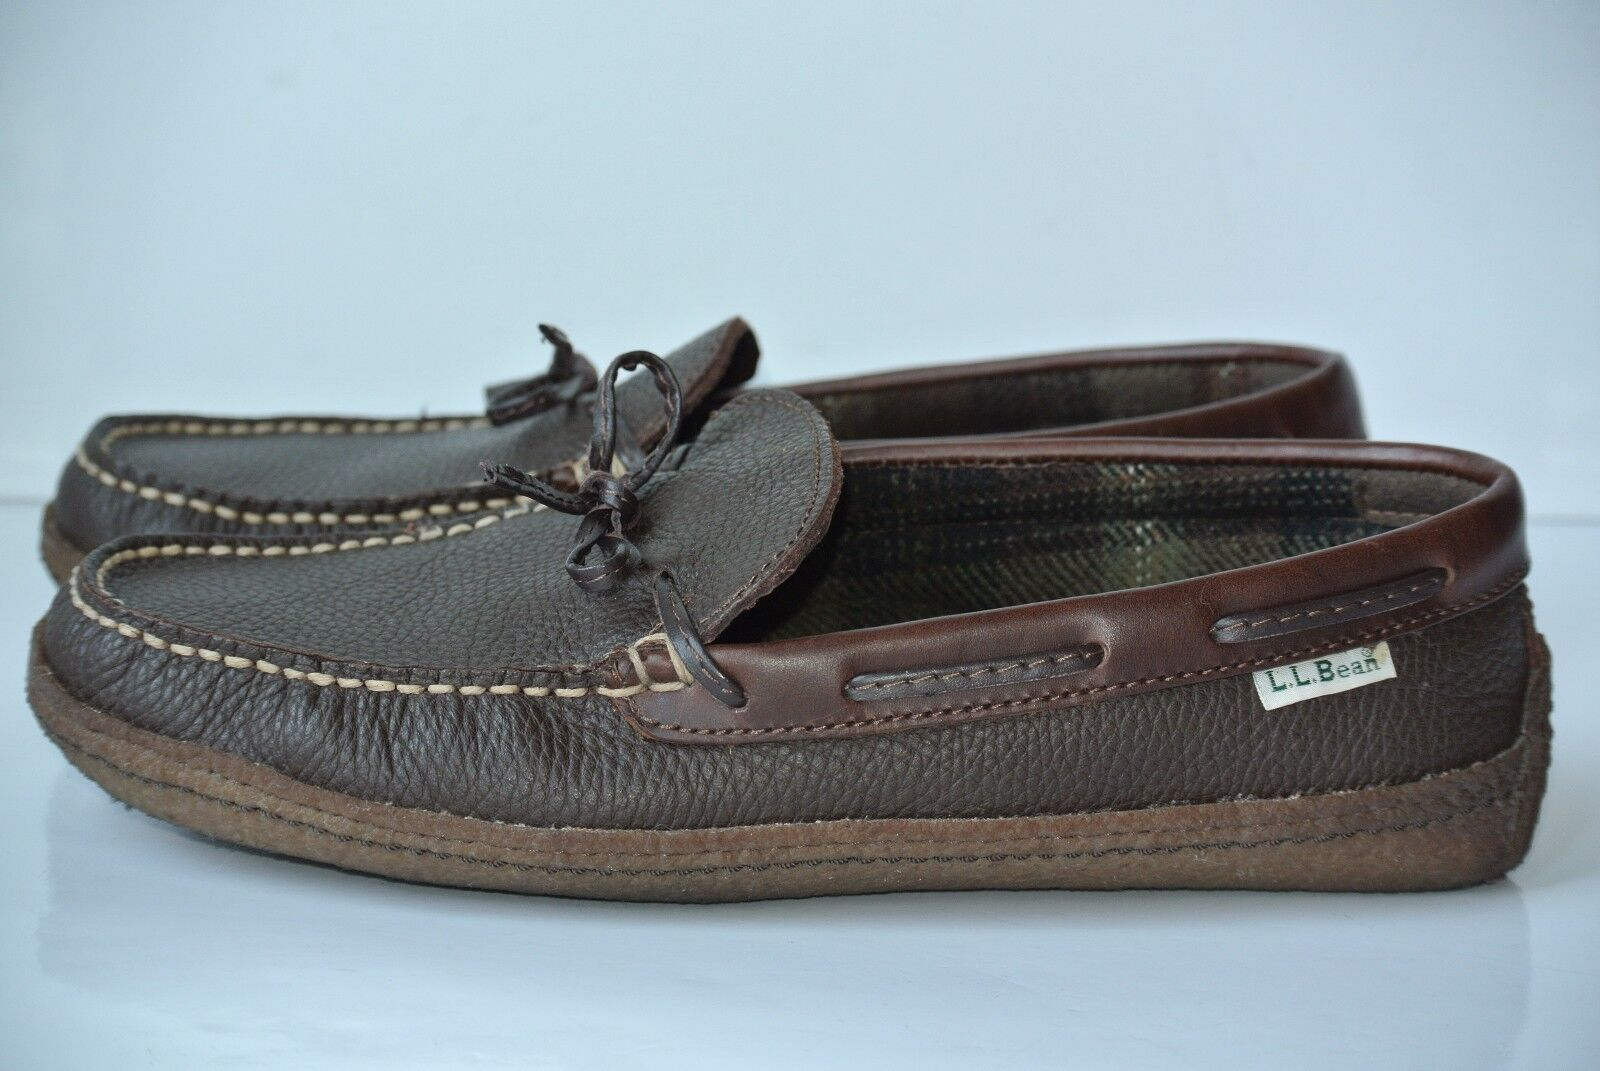 LL BEAN Womens Sz 10 M M 10 Brown Leather Fleece Lined Camp Moc Slipper Shoes ace6c7